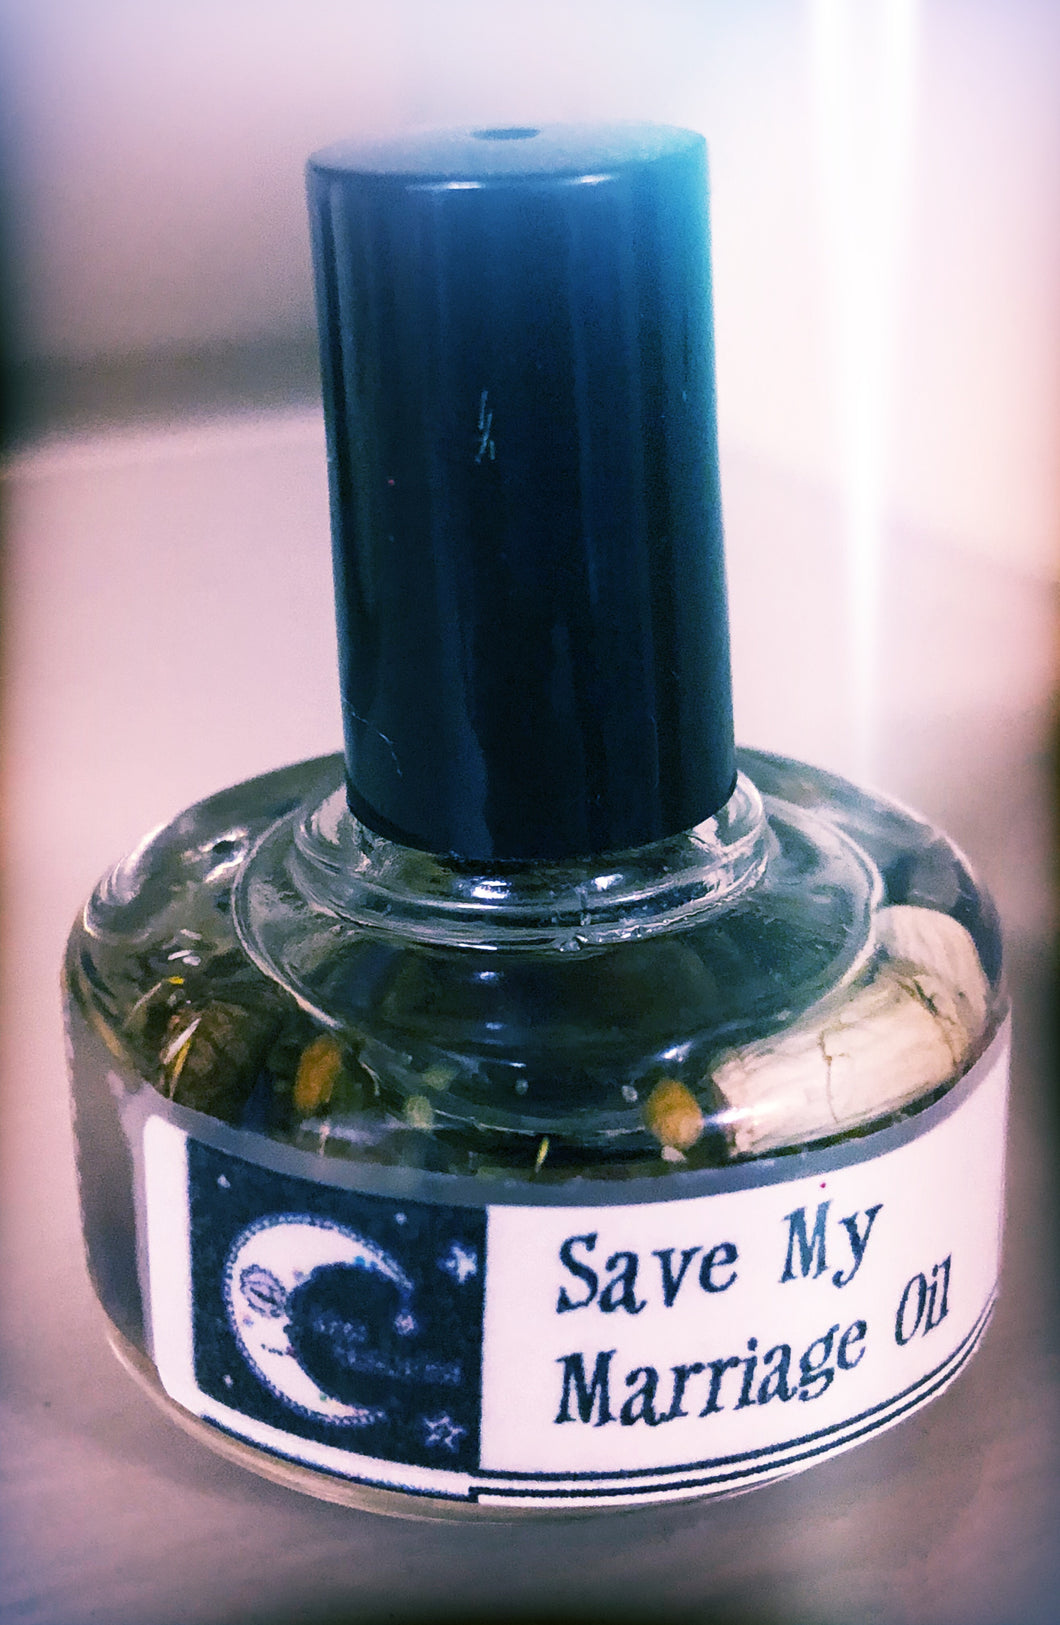 Save my Marriage Oil